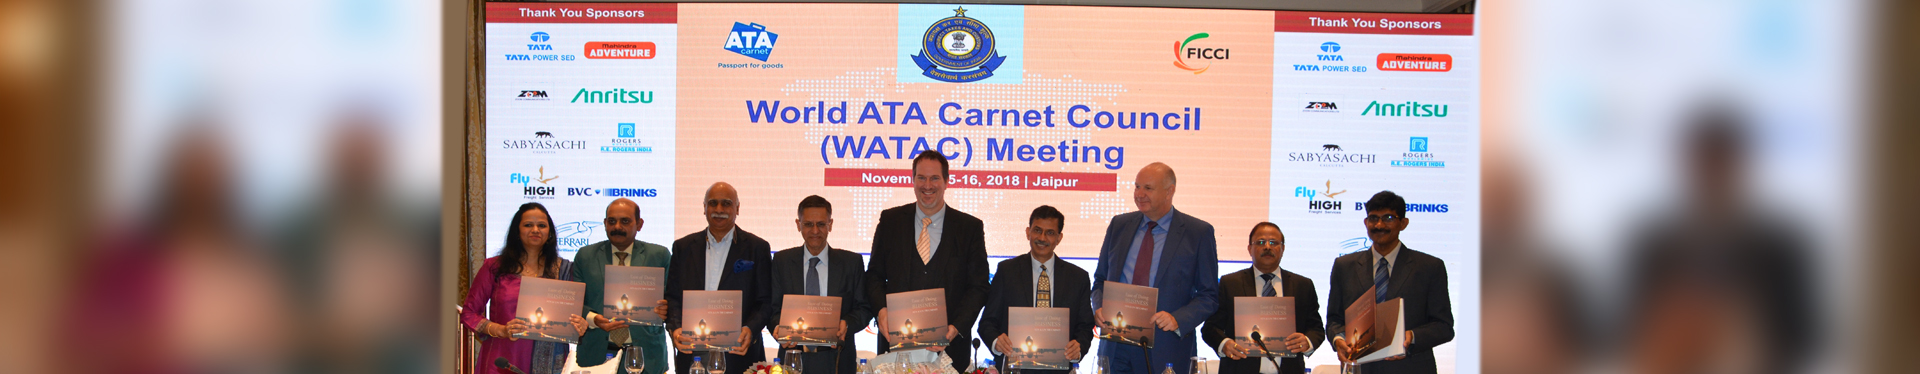 World ATA Carnet Council Meeting Jaipur